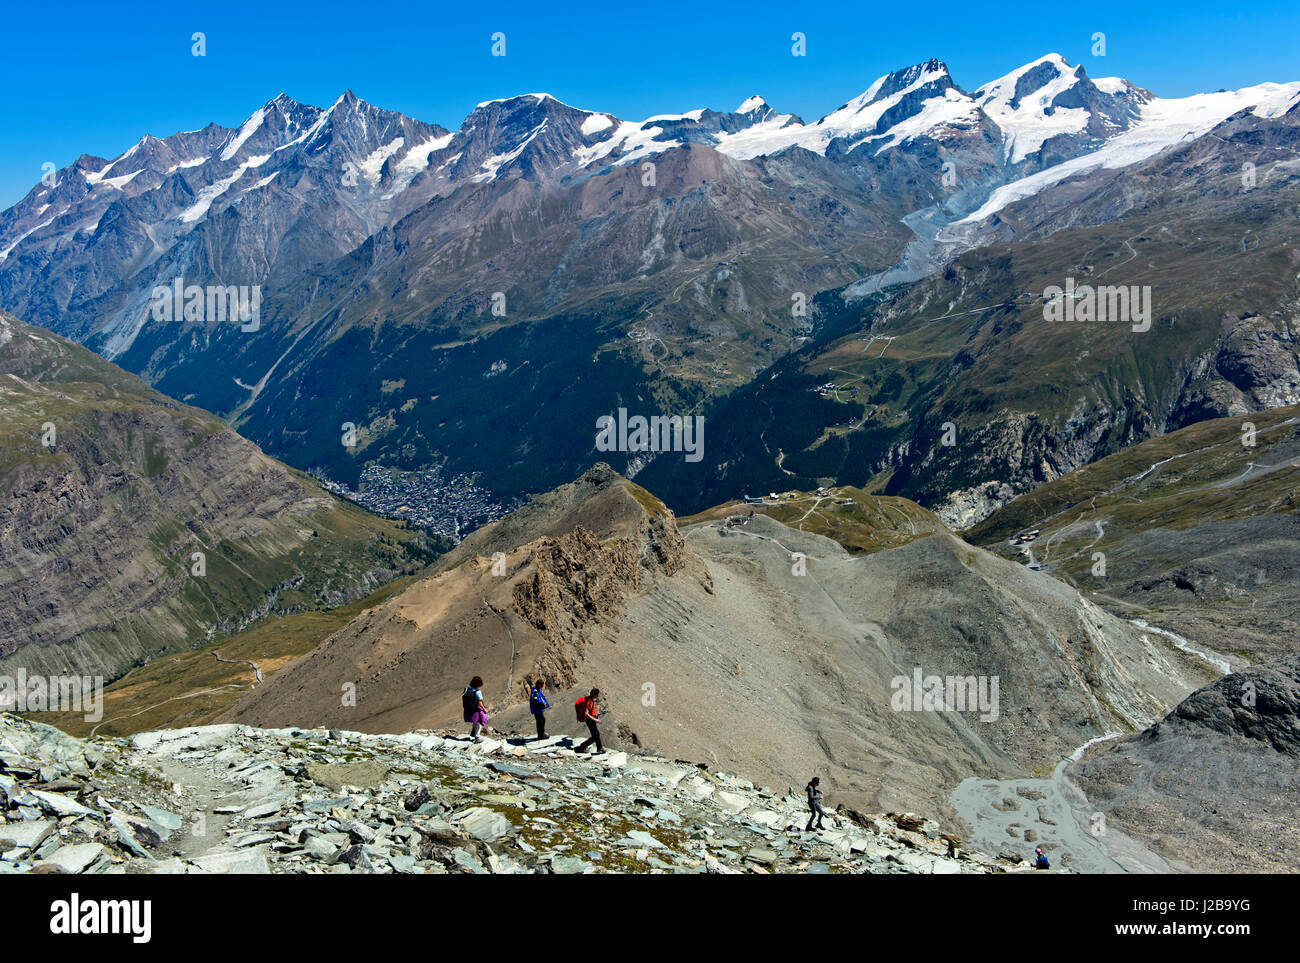 Hikers descending on the trail from the Hoernlihuette back to Zermatt, Valais, Switzerland - Stock Image